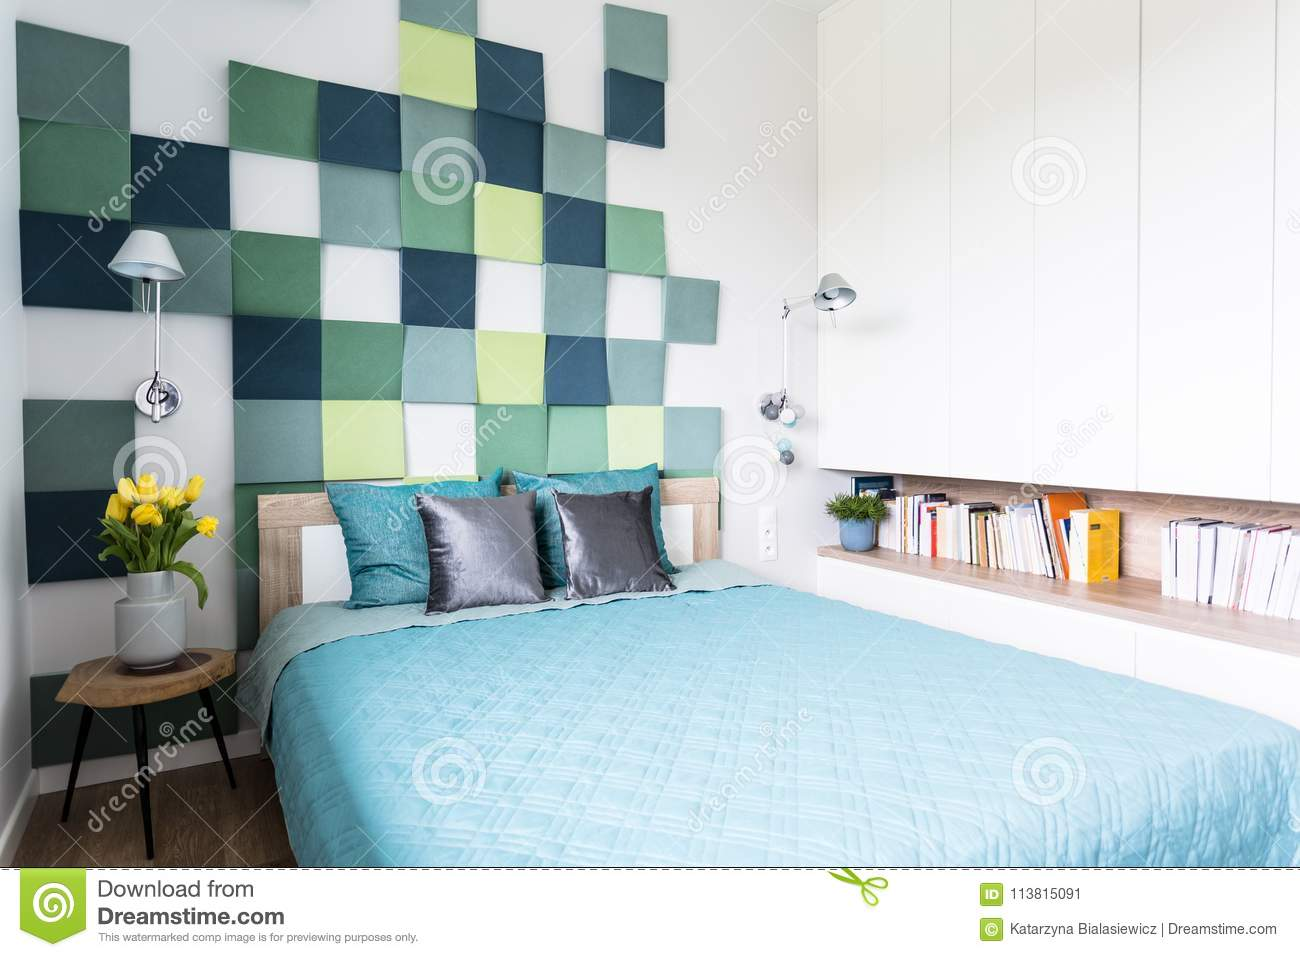 3 444 Bedroom Blue Green Photos Free Royalty Free Stock Photos From Dreamstime